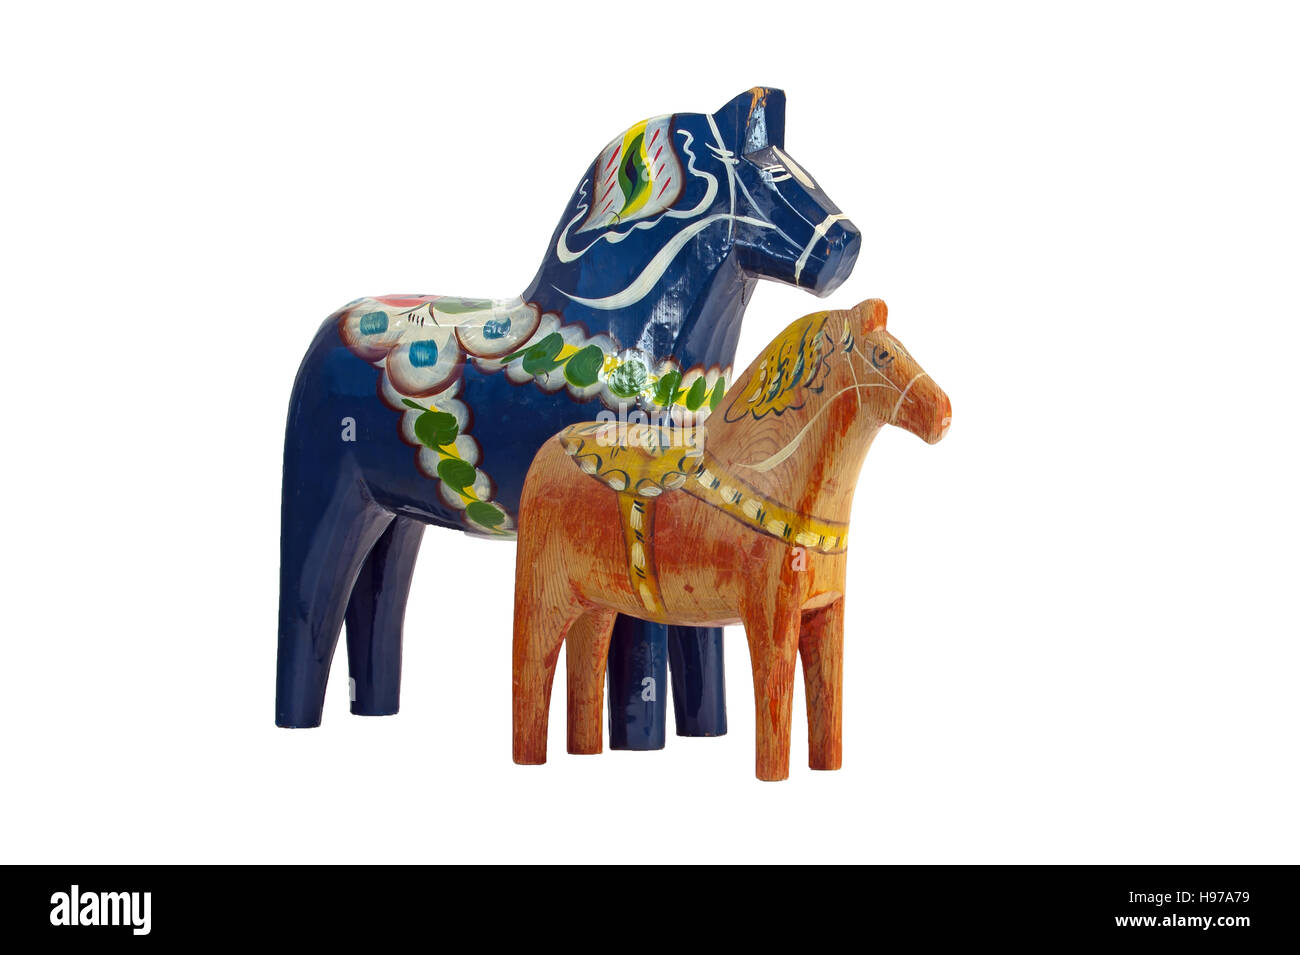 A more modern and blue Dala (Dalecarlian) Horse together with an old red worn Dala Horse, isolated on a white background. - Stock Image